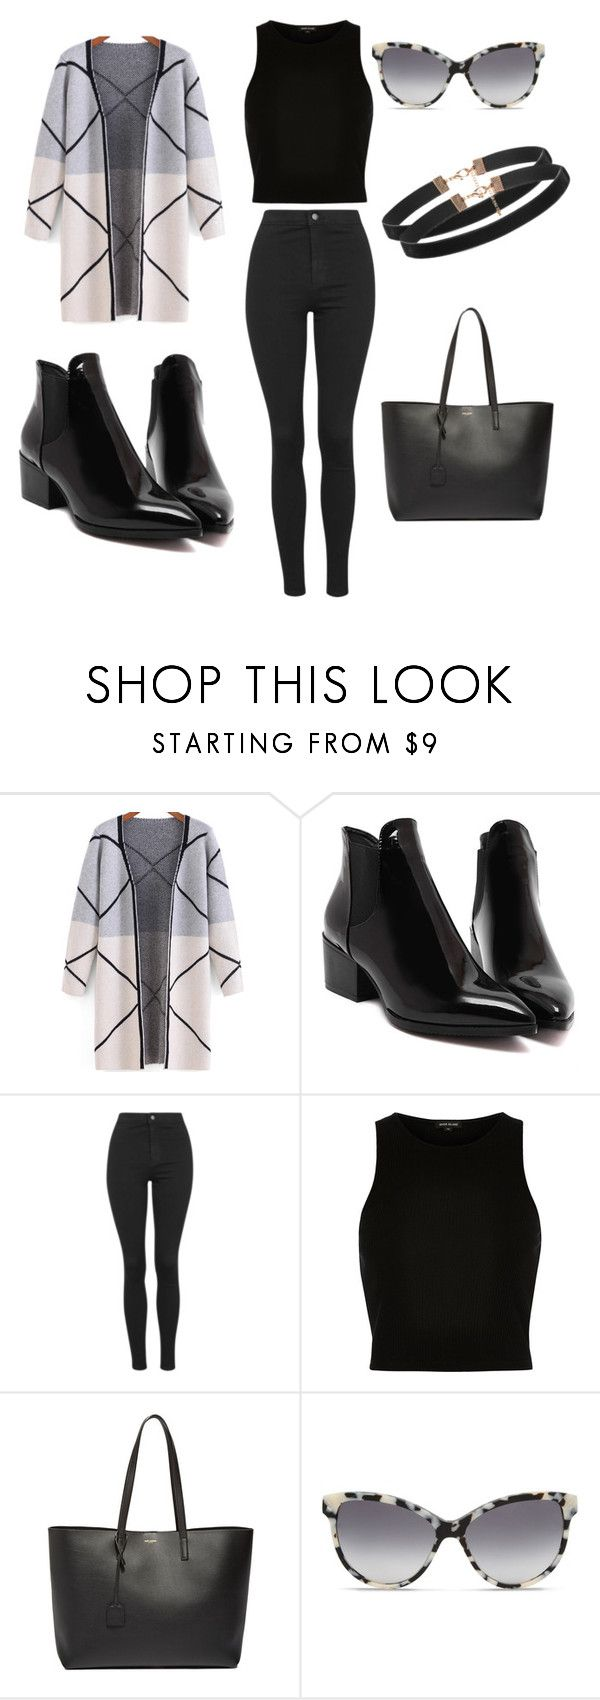 """Untitled #13"" by molly-mahaffey on Polyvore featuring Topshop, River Island, Yves Saint Laurent, STELLA McCARTNEY, women's clothing, women, female, woman, misses and juniors"